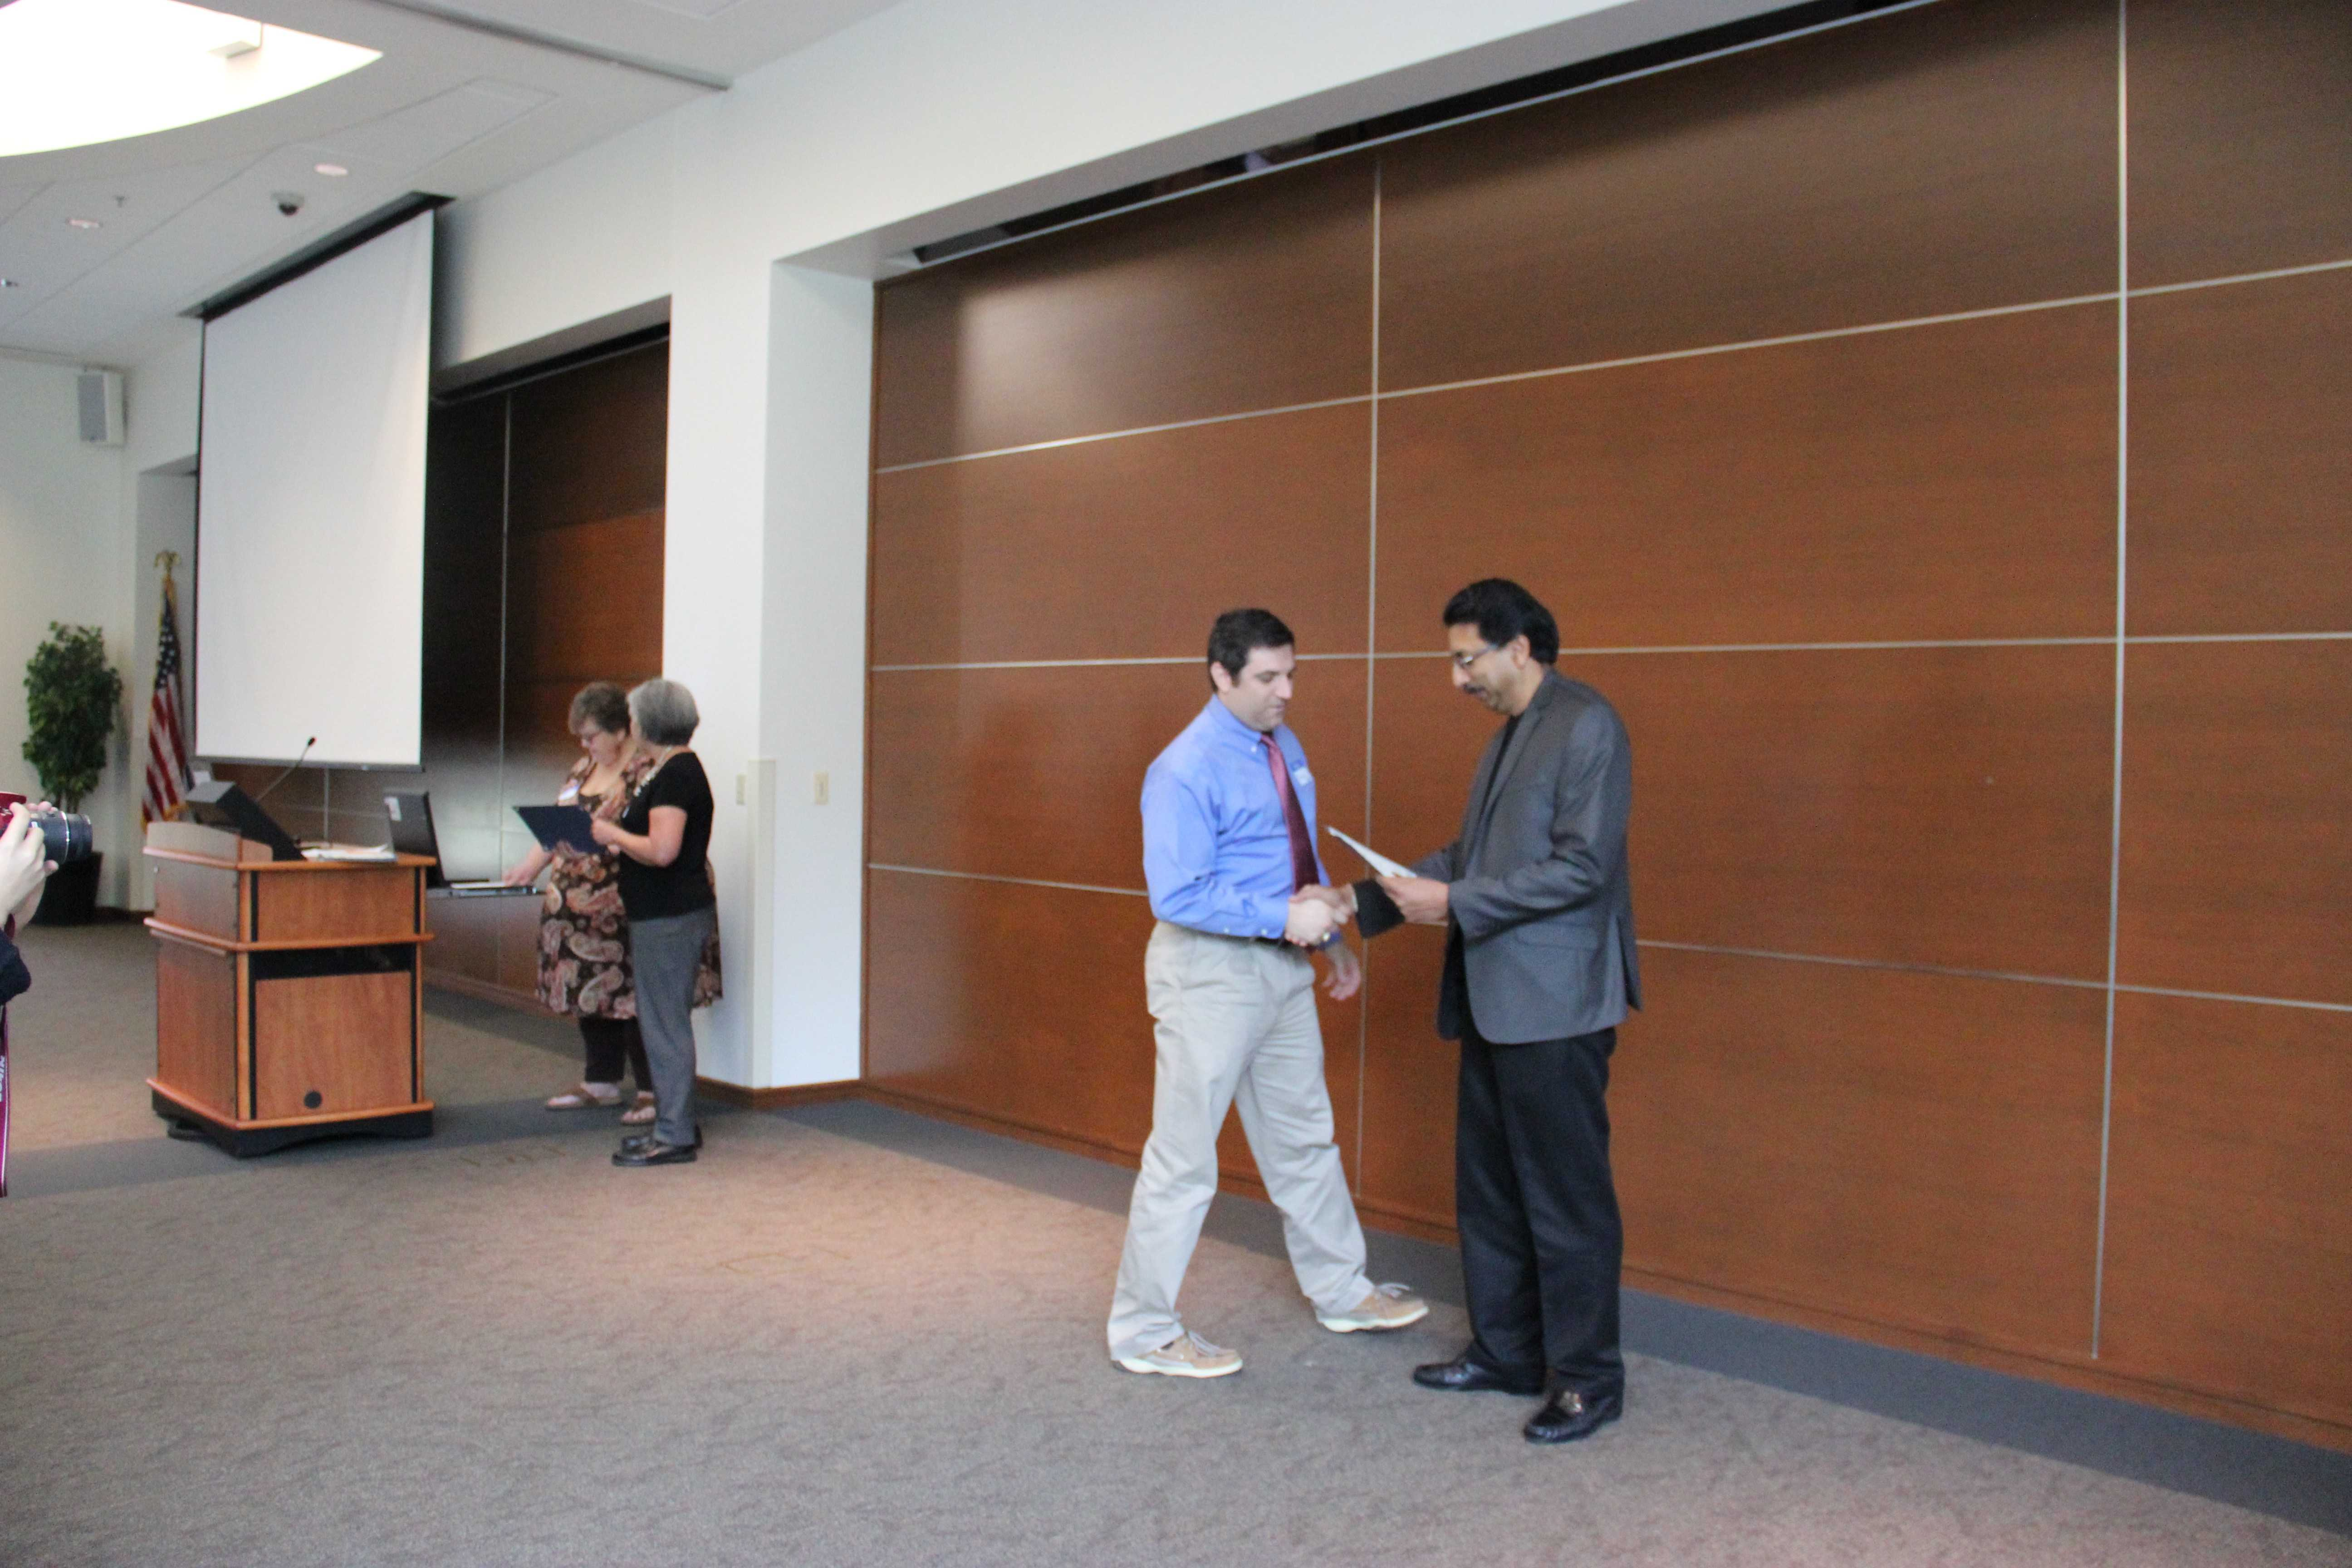 Coppell High School engineering teacher Grant Garner receives recognition for the University of Texas at Dallas 2015 Inspiration Award by motivating and inspiring future computer scientists. This award was presented by UTD Computer Science department head Dr. Gopal Gupta.